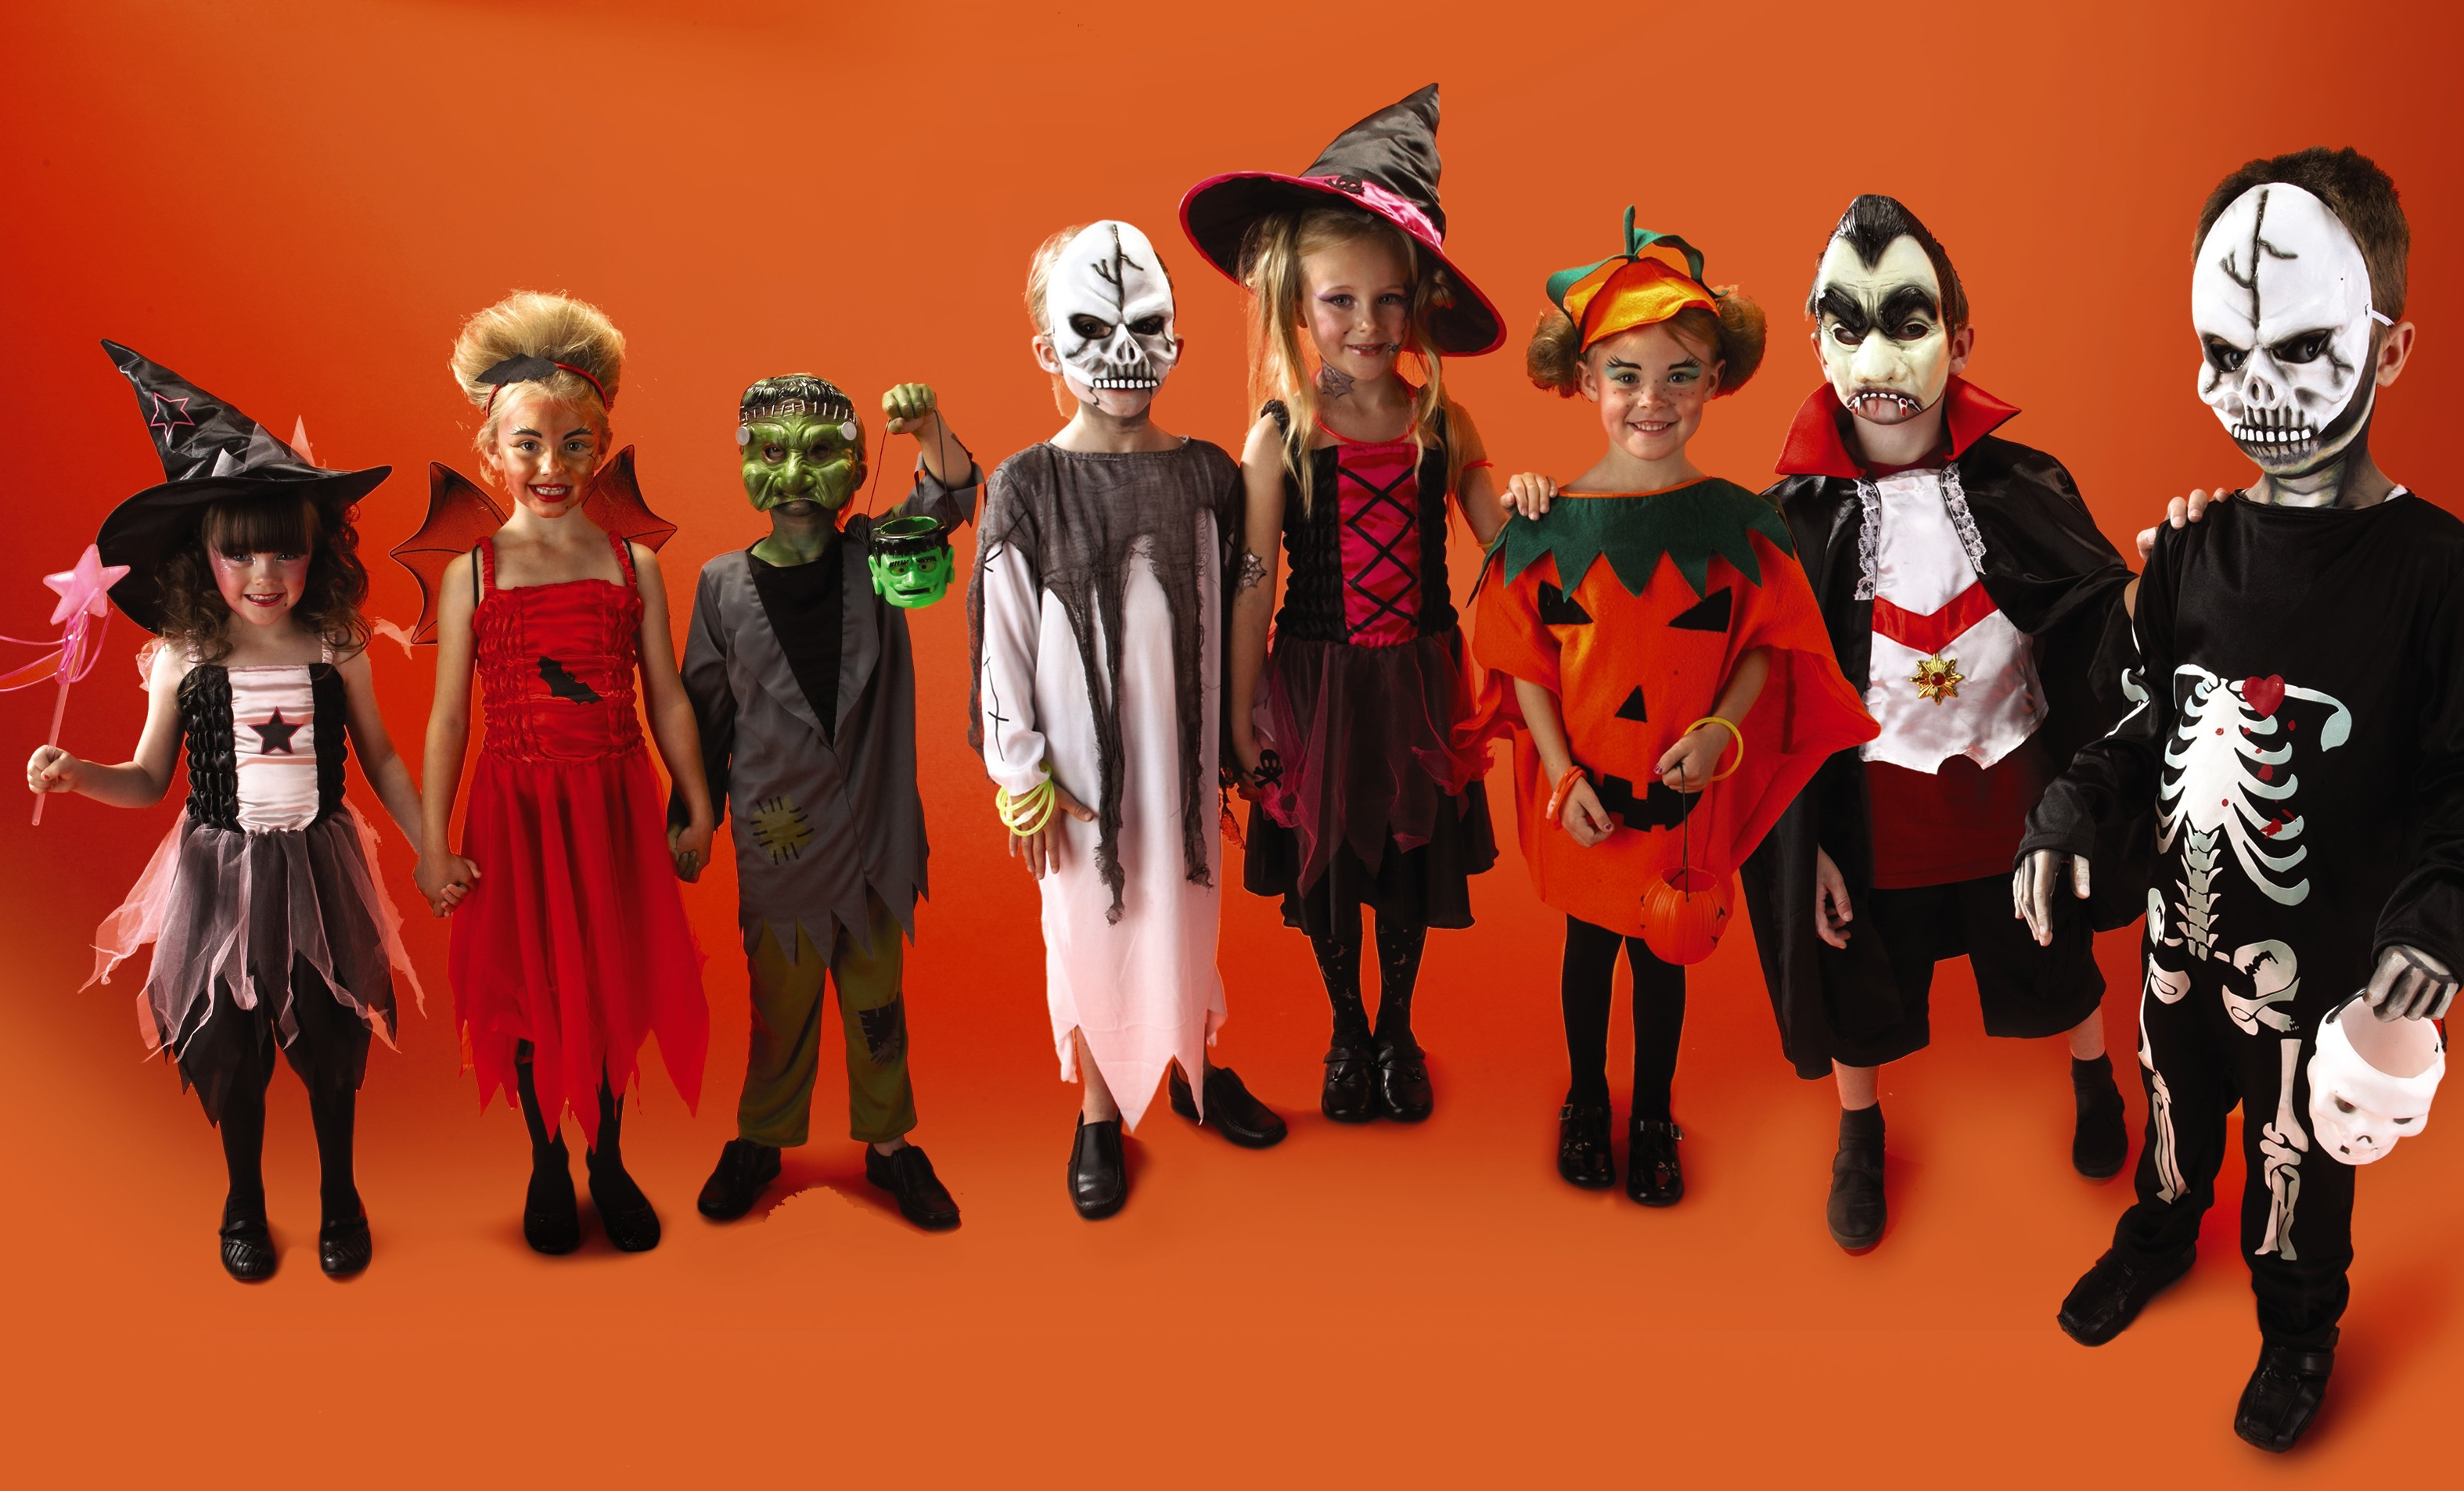 halloween costume contest for kids |willow ridge apartments | prg